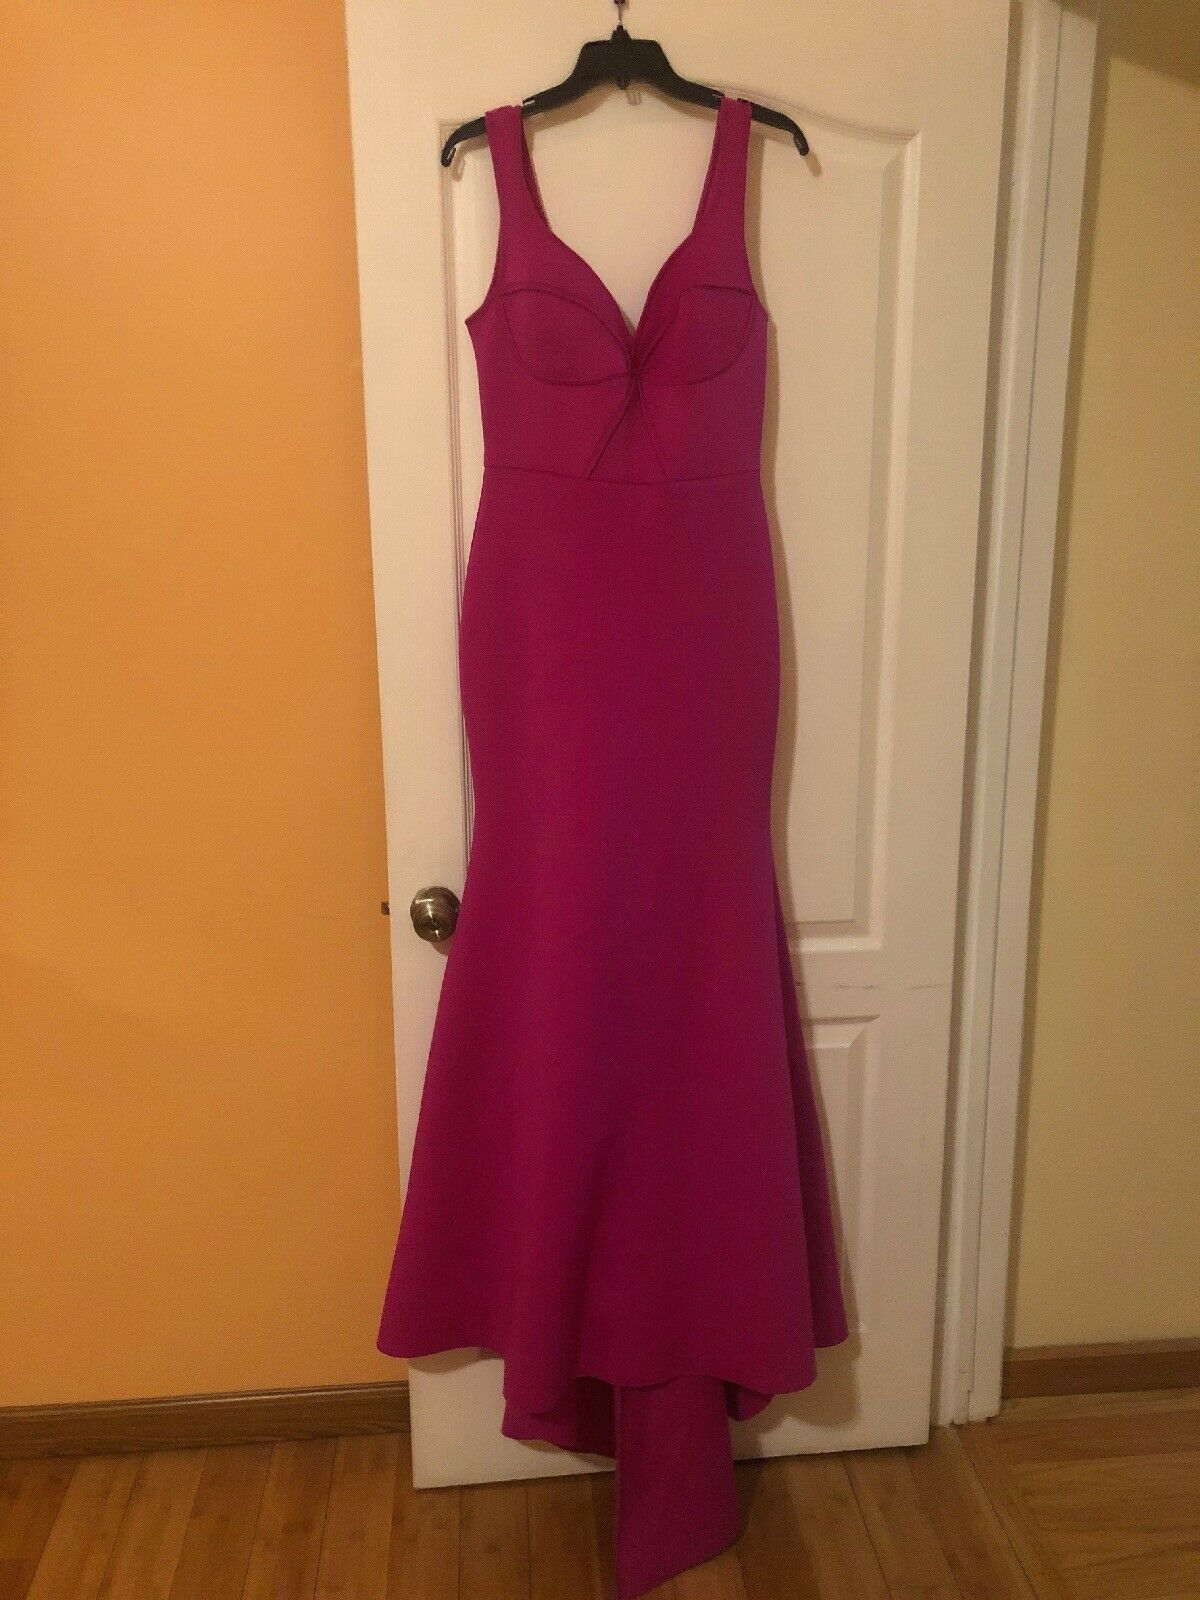 Bebe Long Dress Pink color Party Evening Size M Preowned